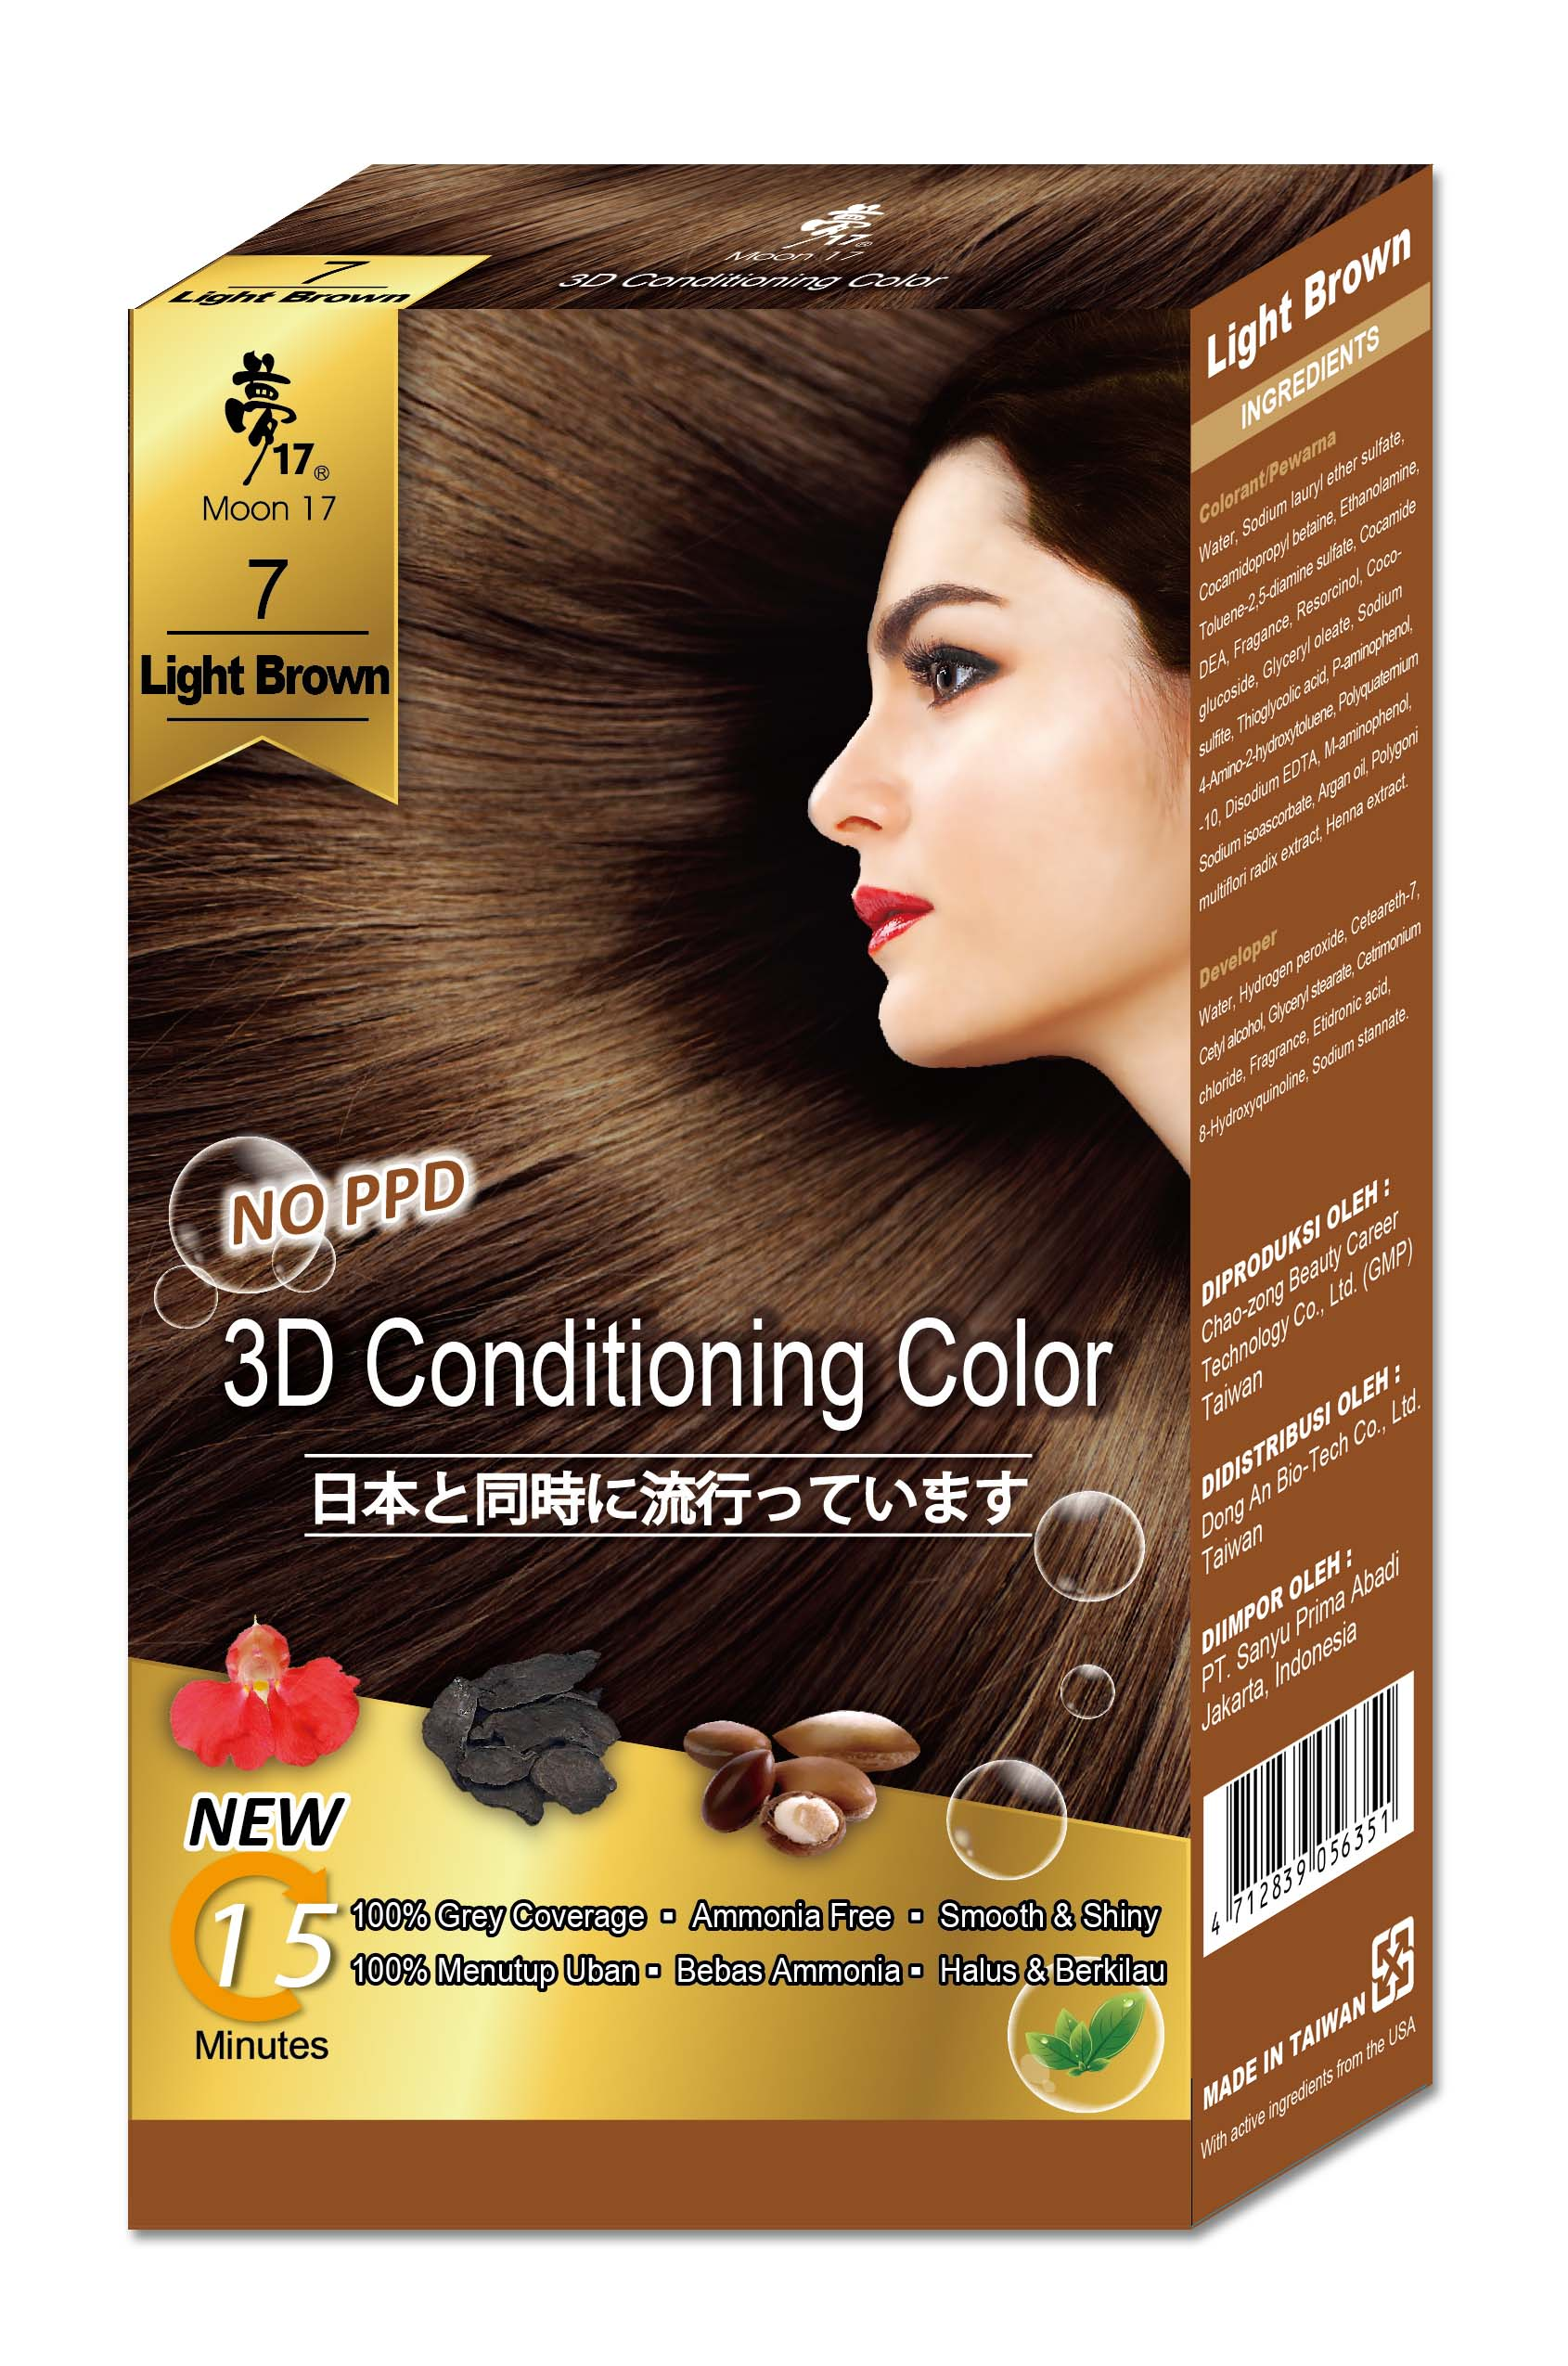 Professional Hair Color Productsbubble Hair Color Supplier Dong An